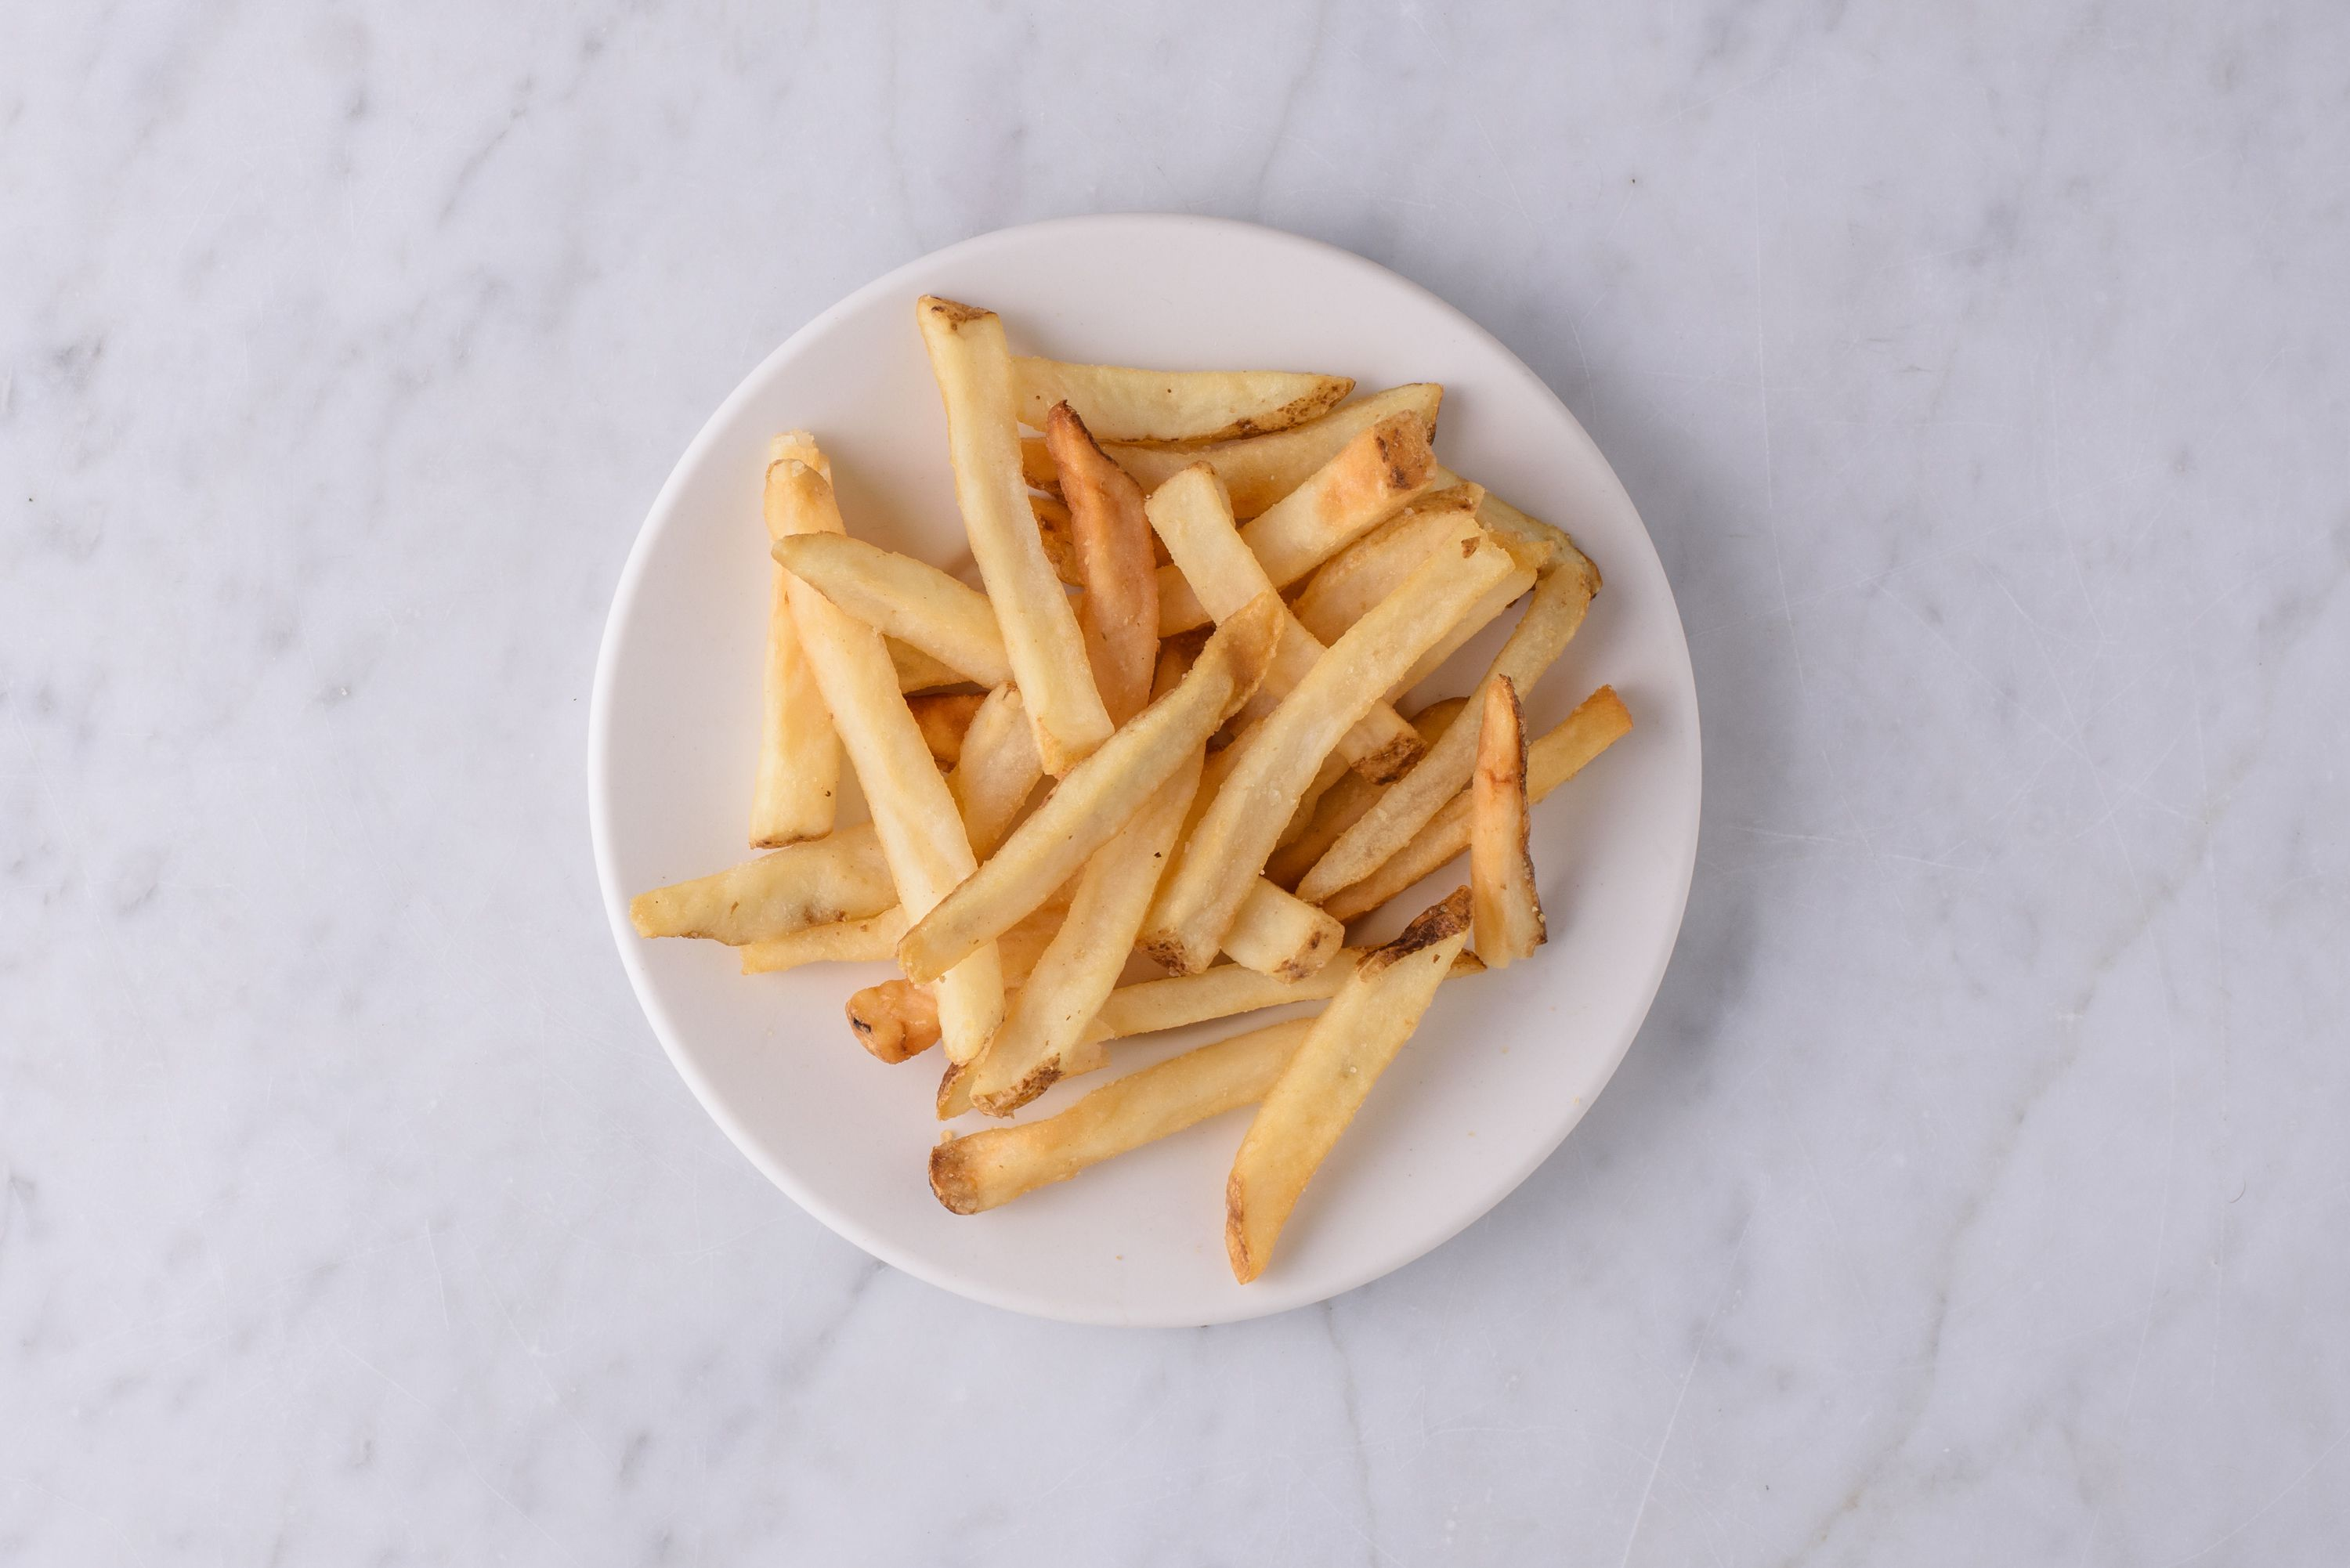 Are French Fries Gluten-Free?